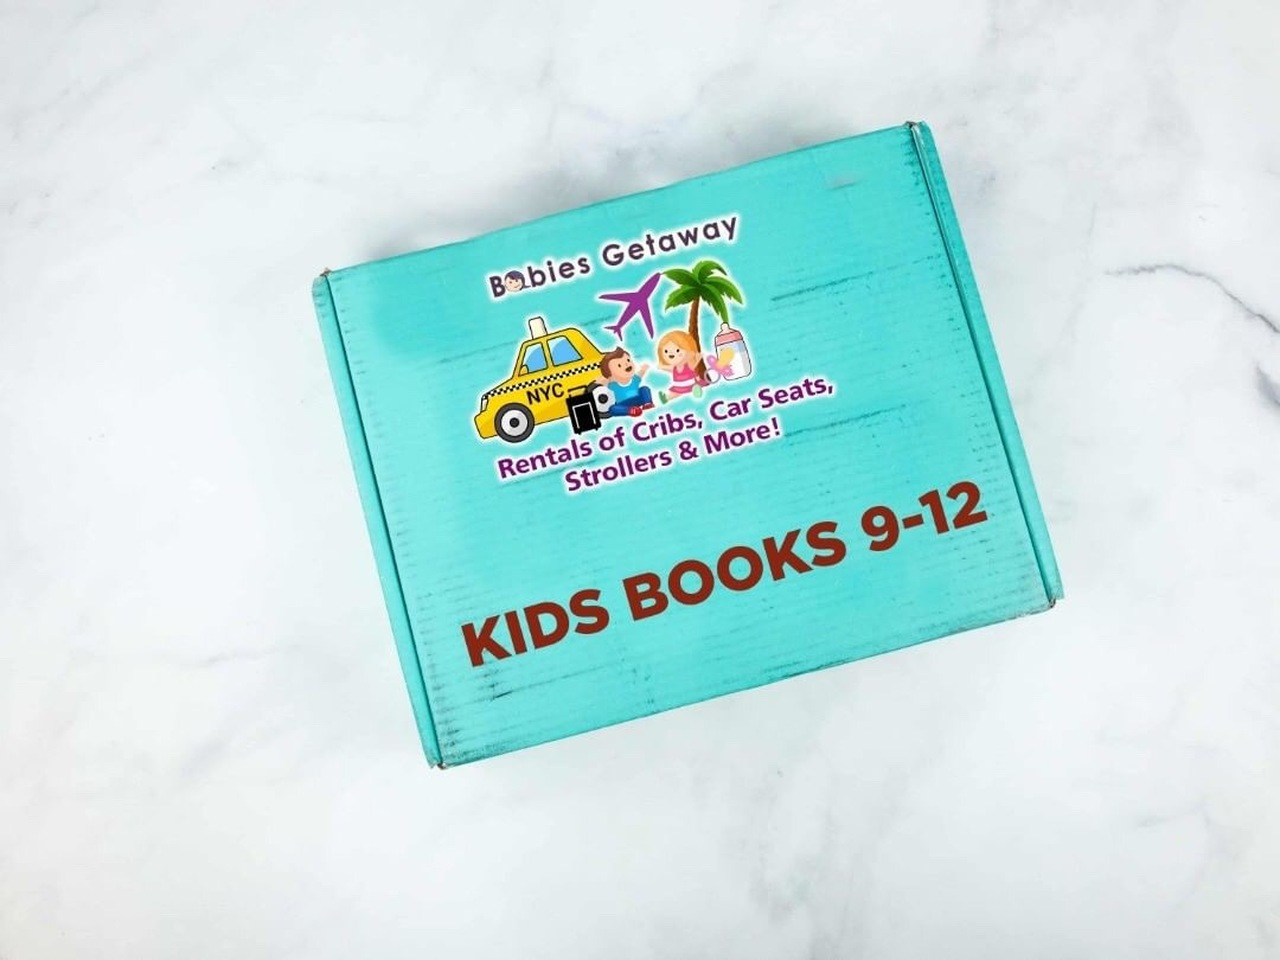 Kids Books 9-12